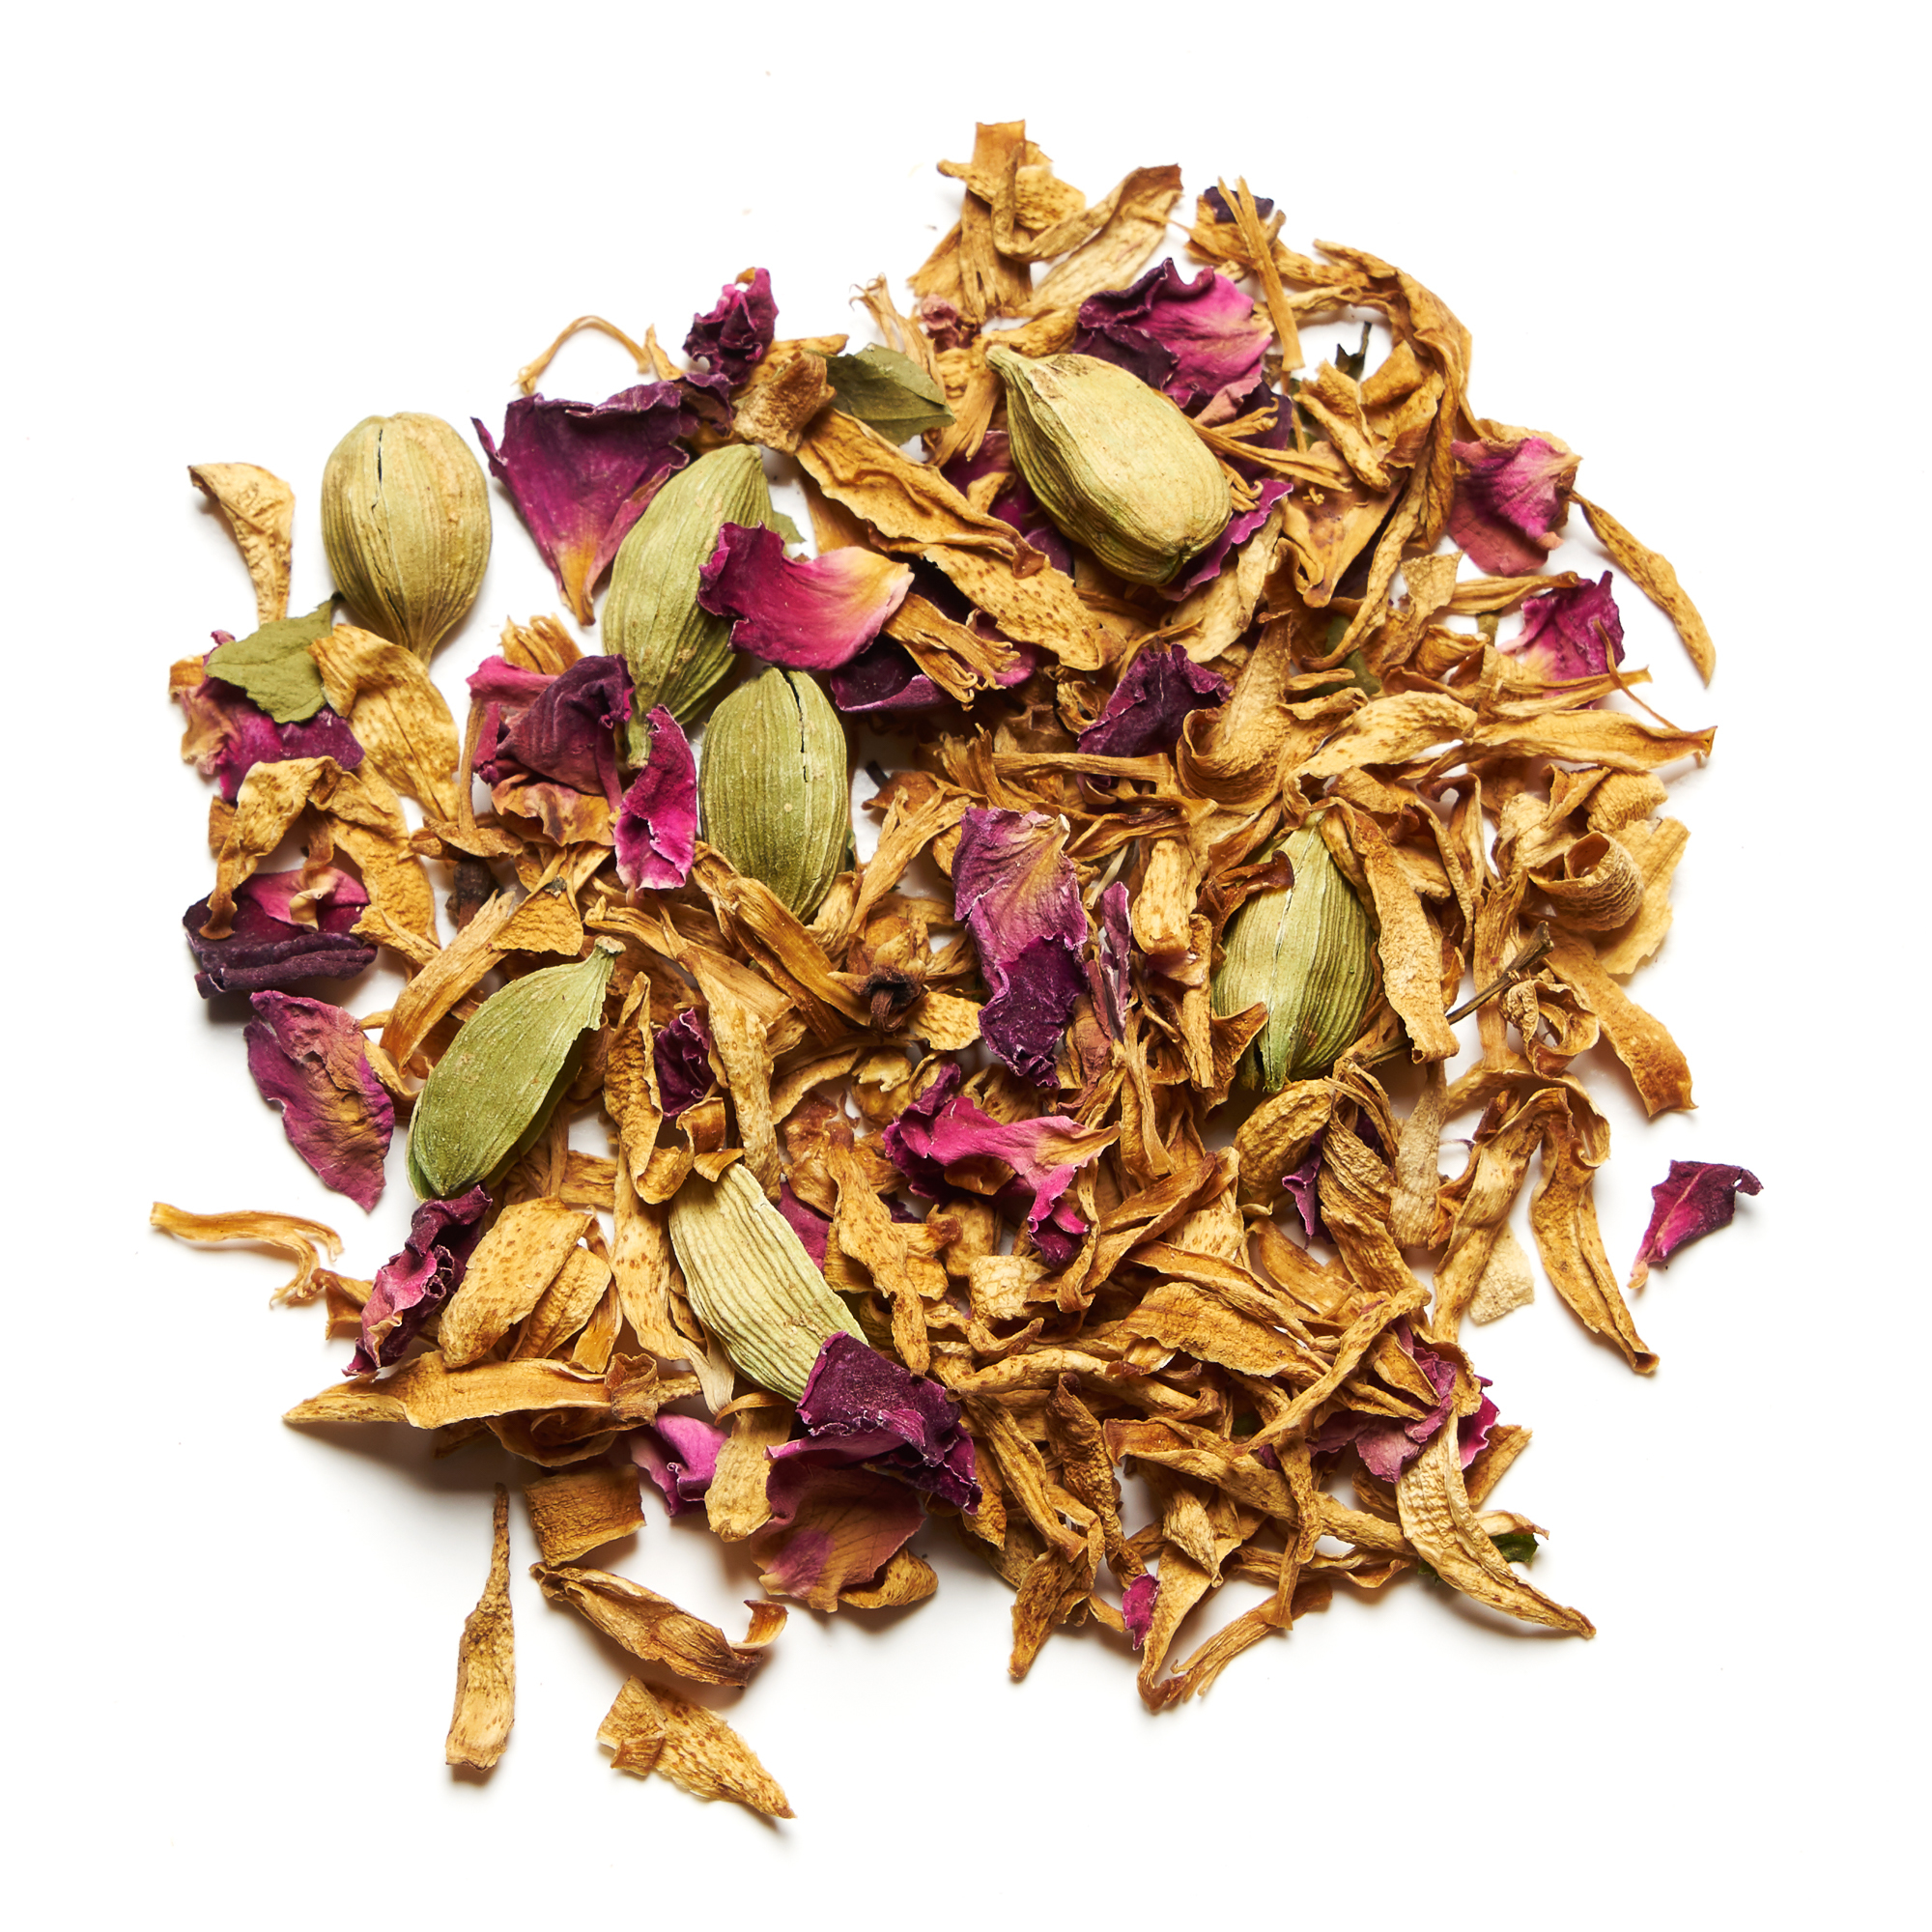 Orange Blossom and Cardamom Herbal Tea